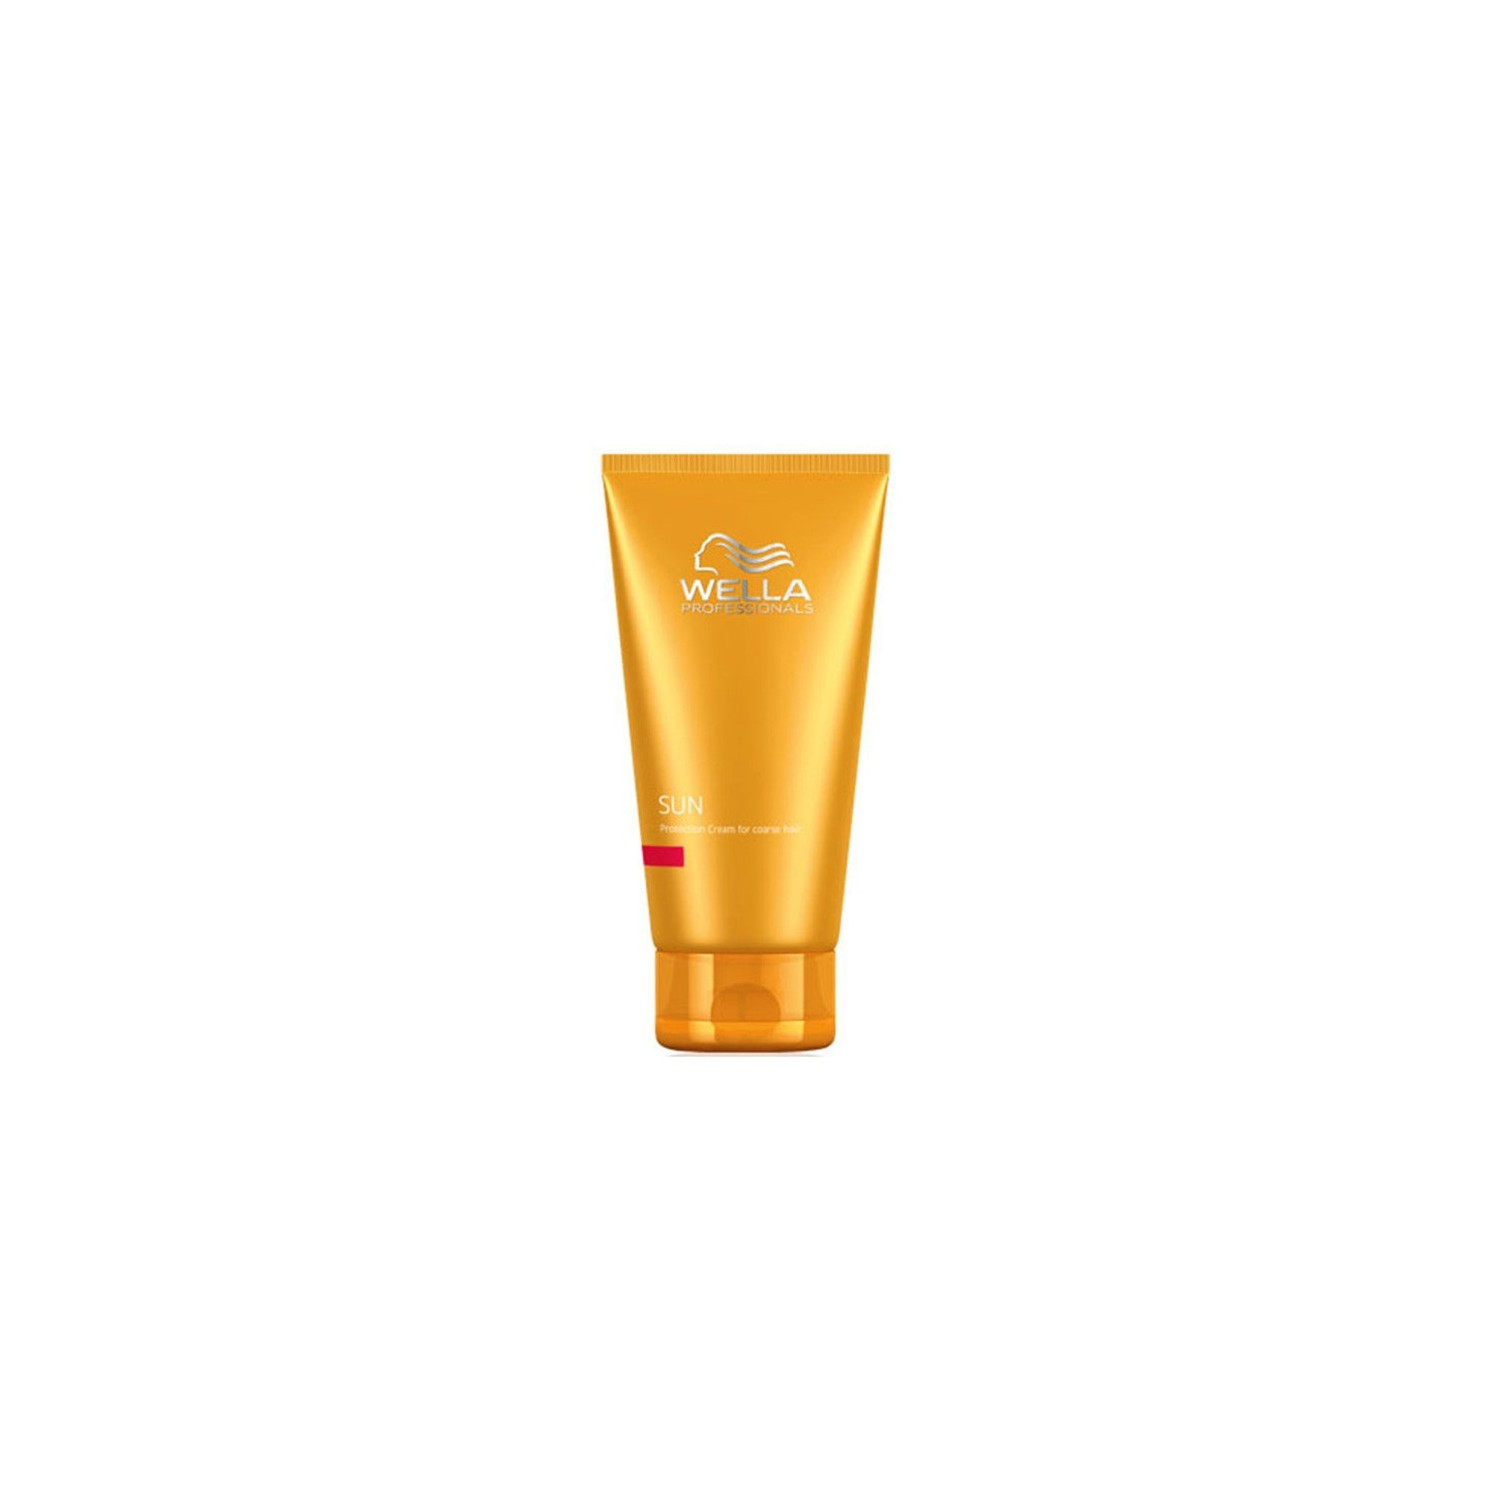 WELLA SUN CREMA PROTECCION 150ML